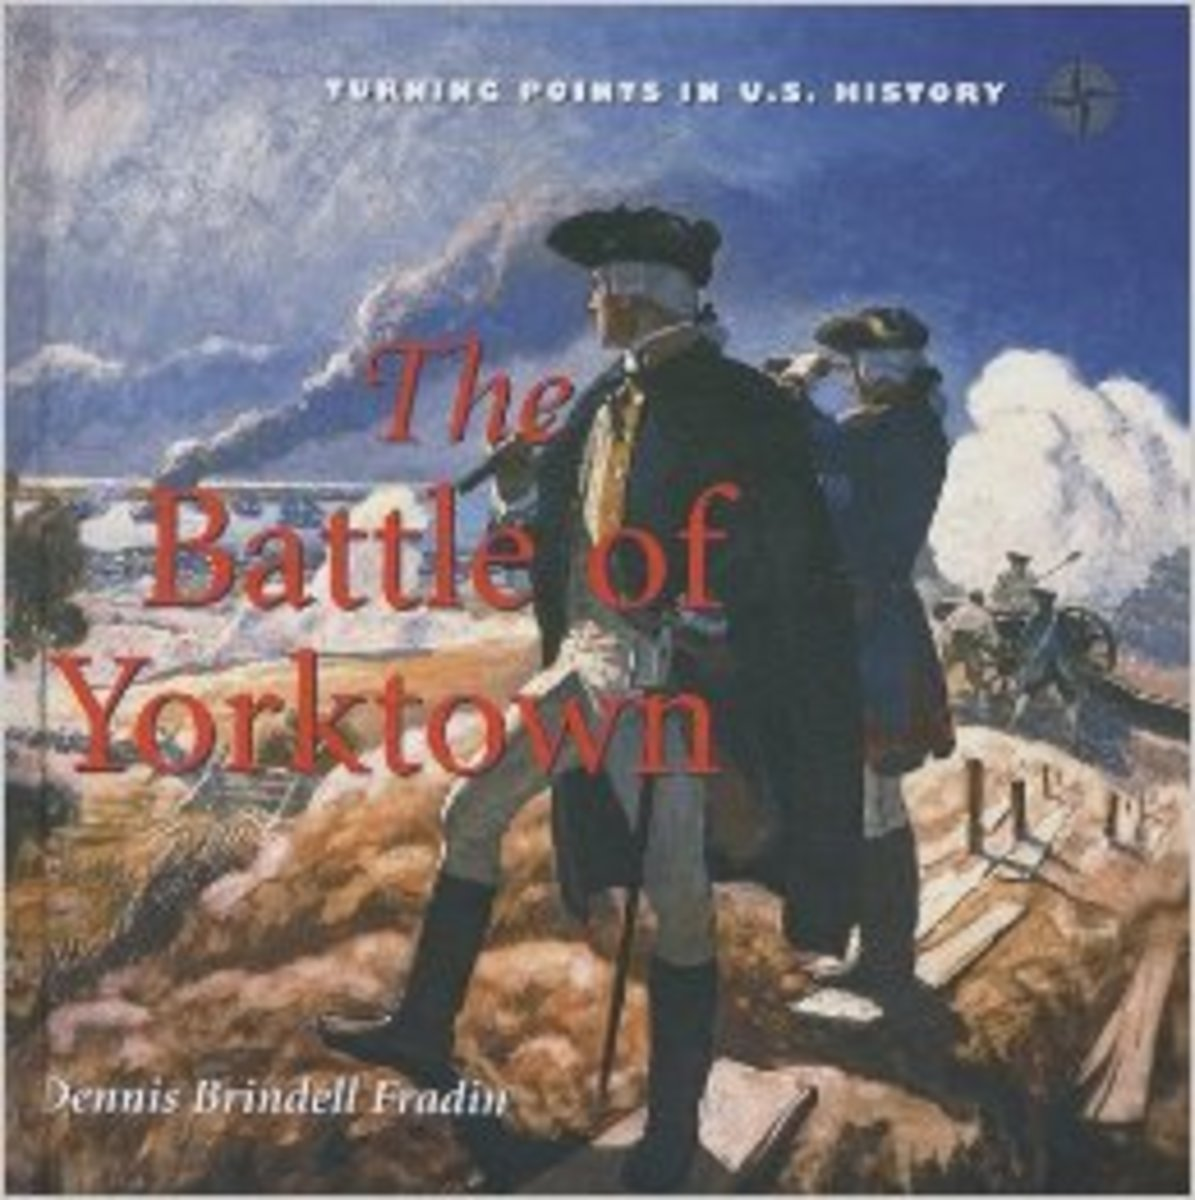 Battle of Yorktown (Turning Points in U.S. History) by Dennis Brindell Fradin